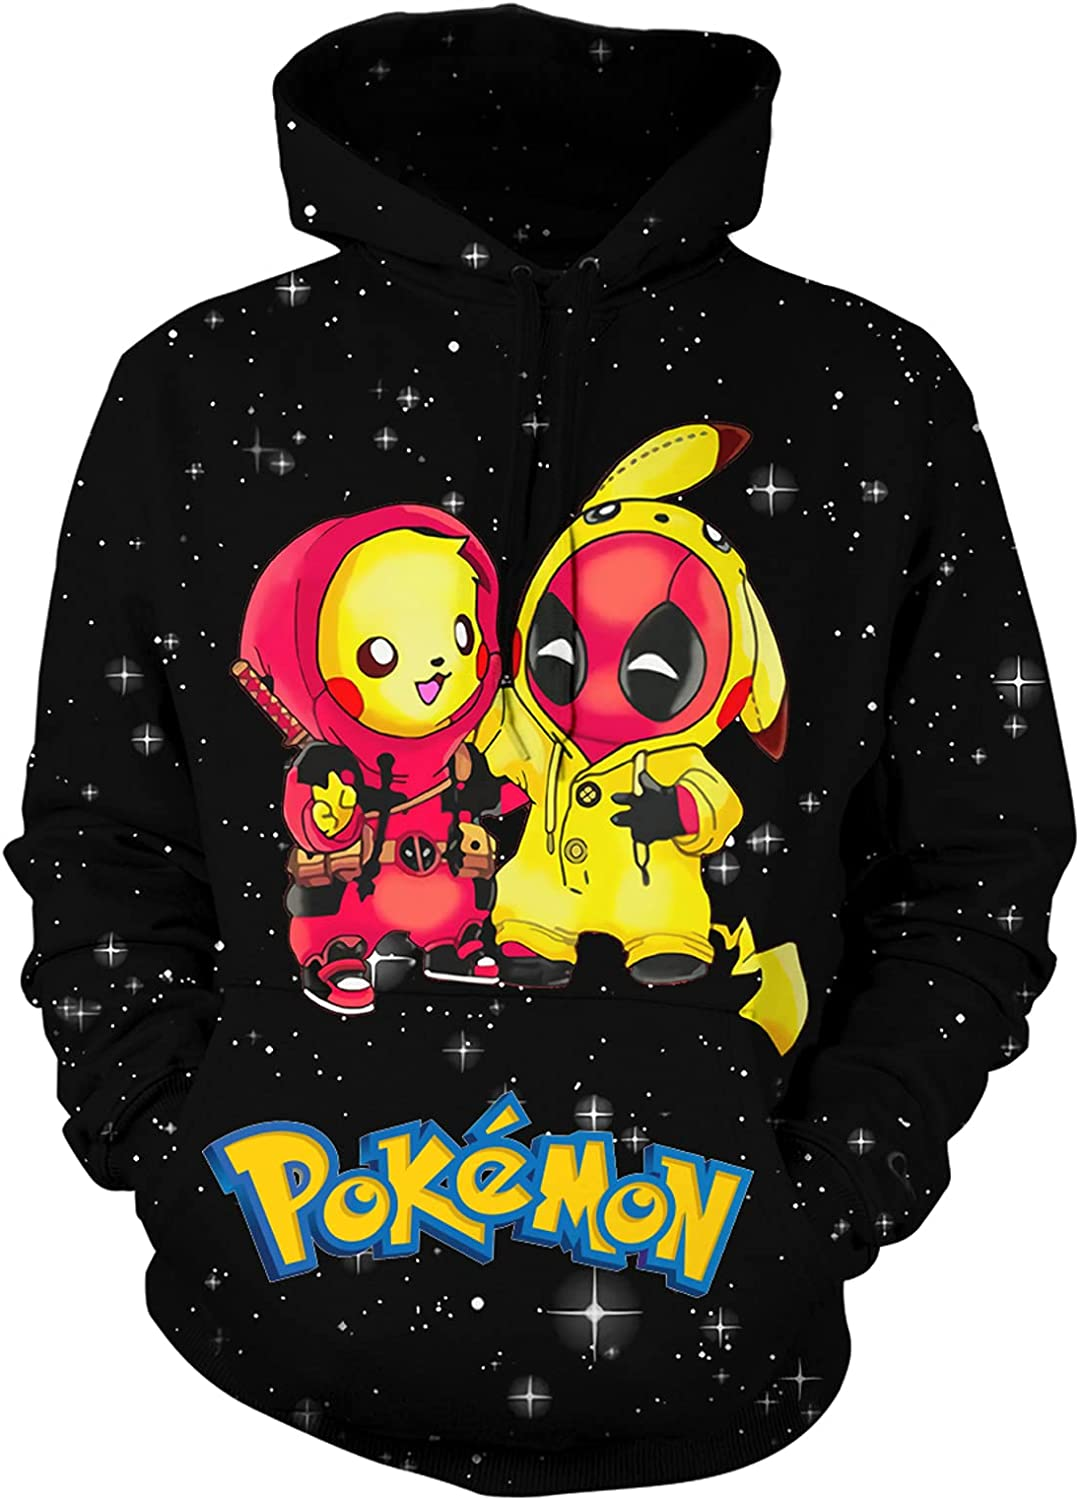 CNMLSD Anime 3d Printed Cute Hoodie For Both Boys And Girls To Wear Casual Hoodies